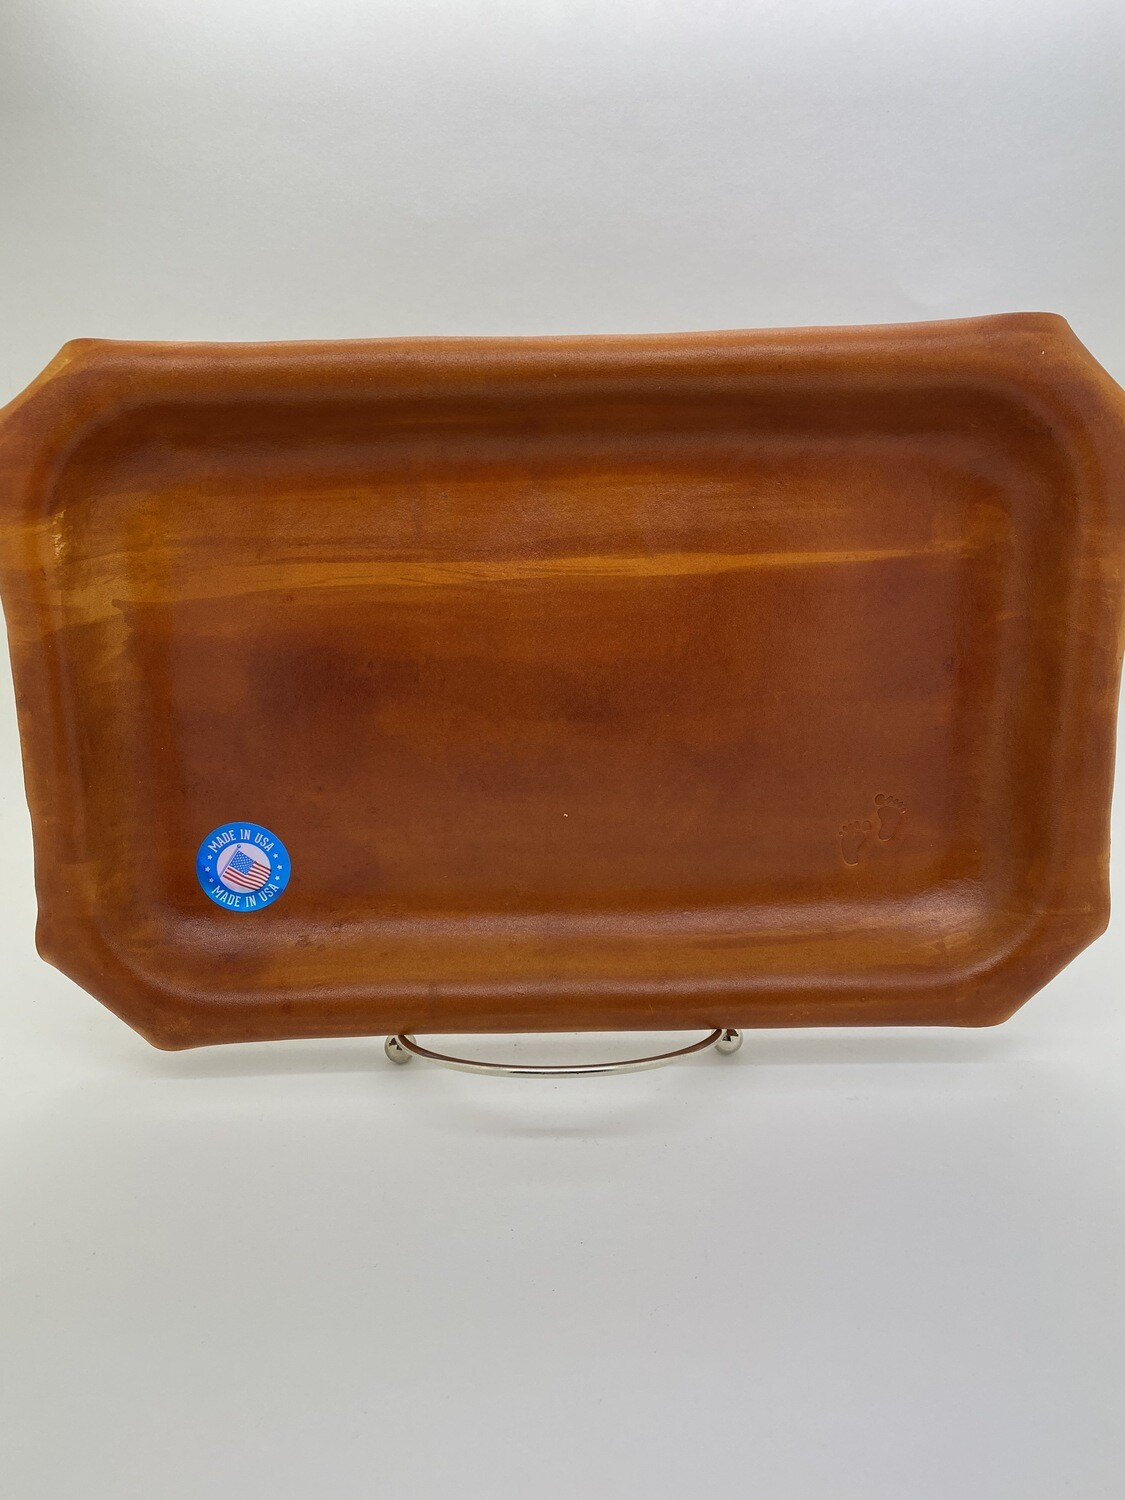 "Jason Blue Leather Rolling Tray - Medium 7"" x 10.5"""